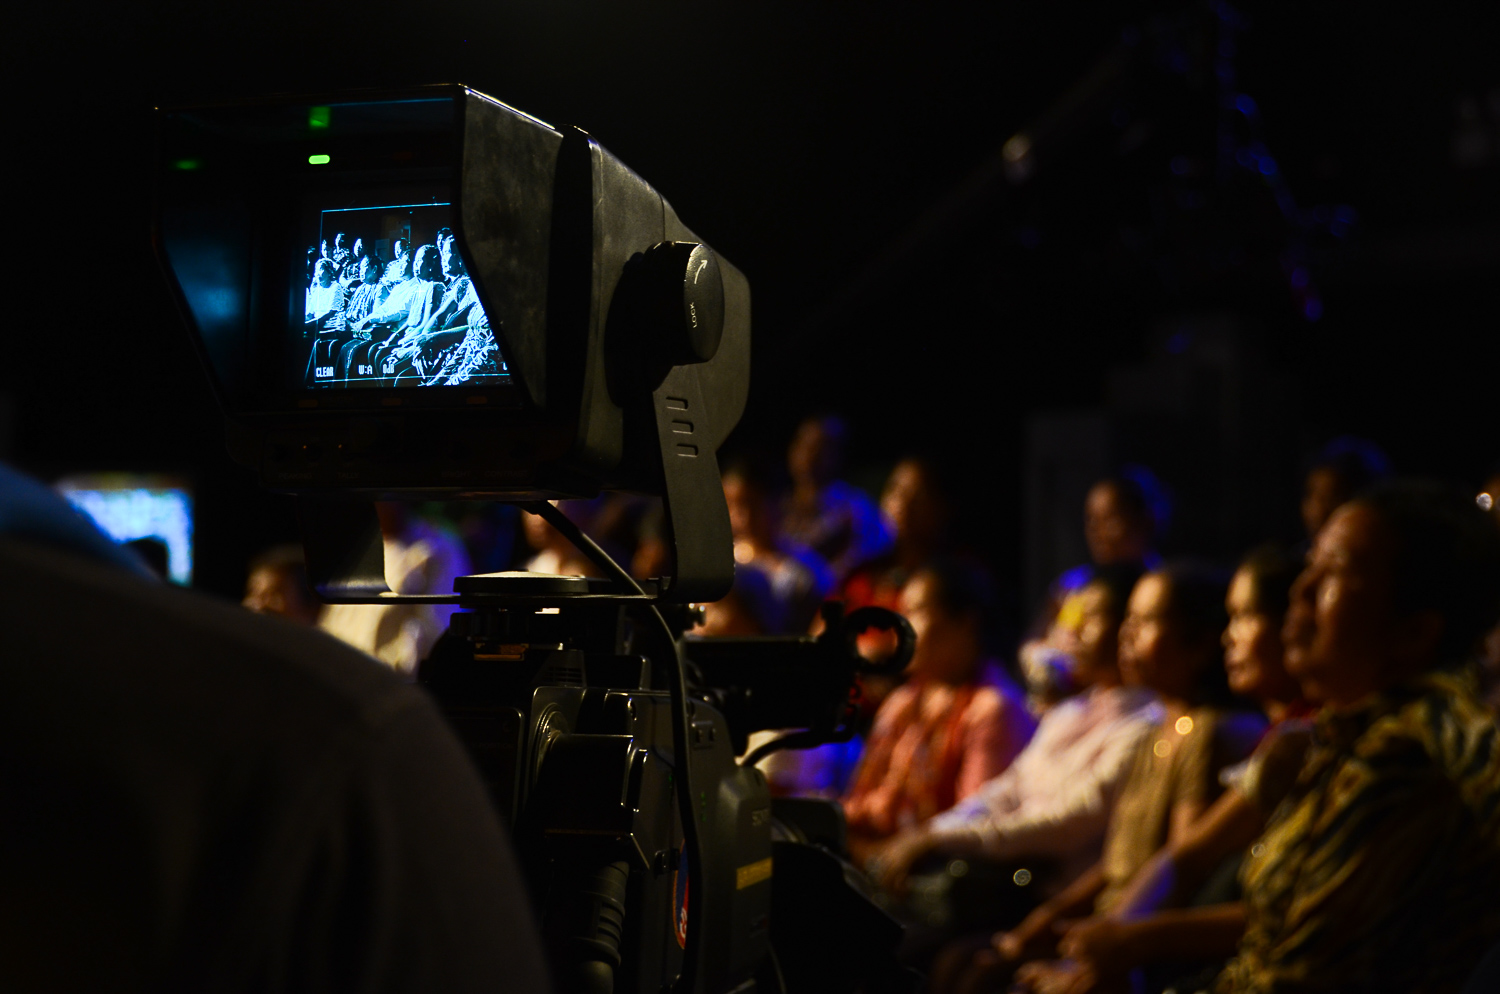 A camera pans across the audience during a taping of the reality television show, 'It's Not a Dream'.